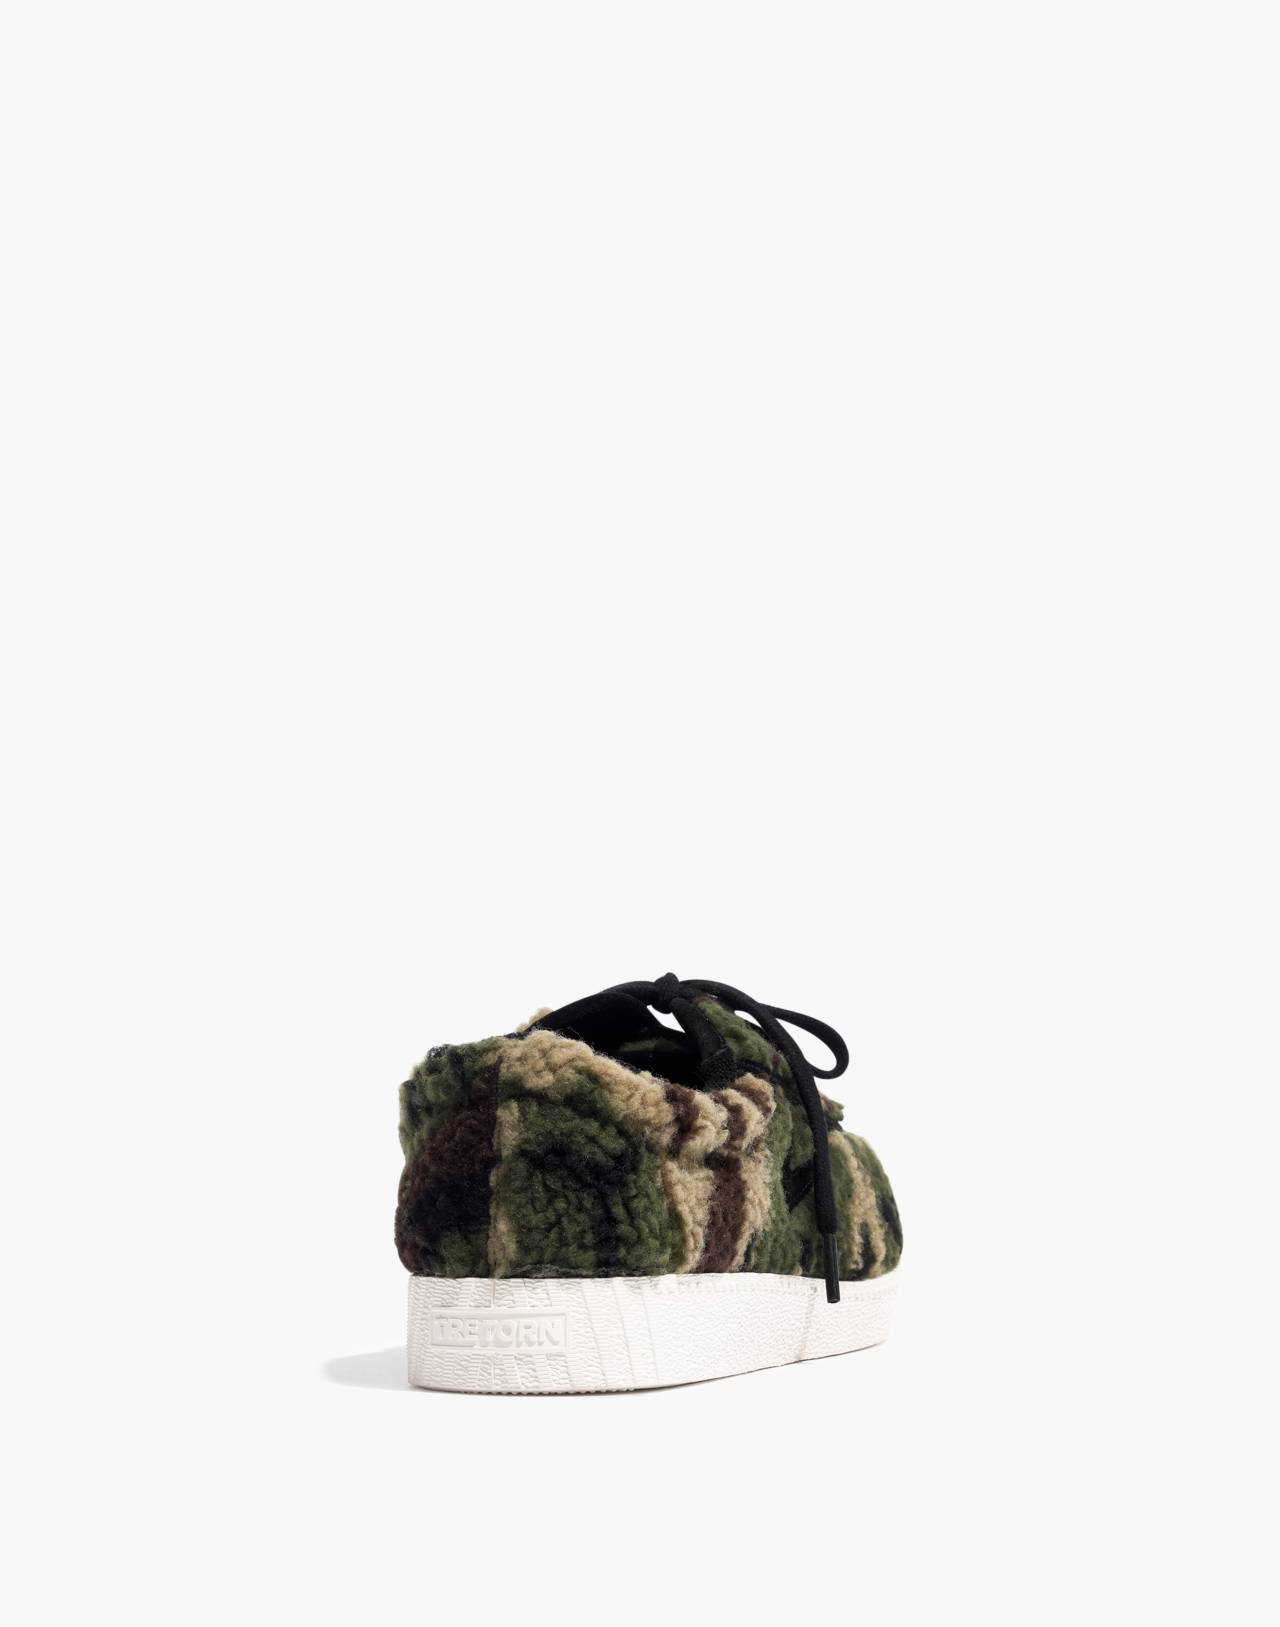 Tretorn® Nylite Plus Sneakers in Camo Faux Shearling in olive black image 4